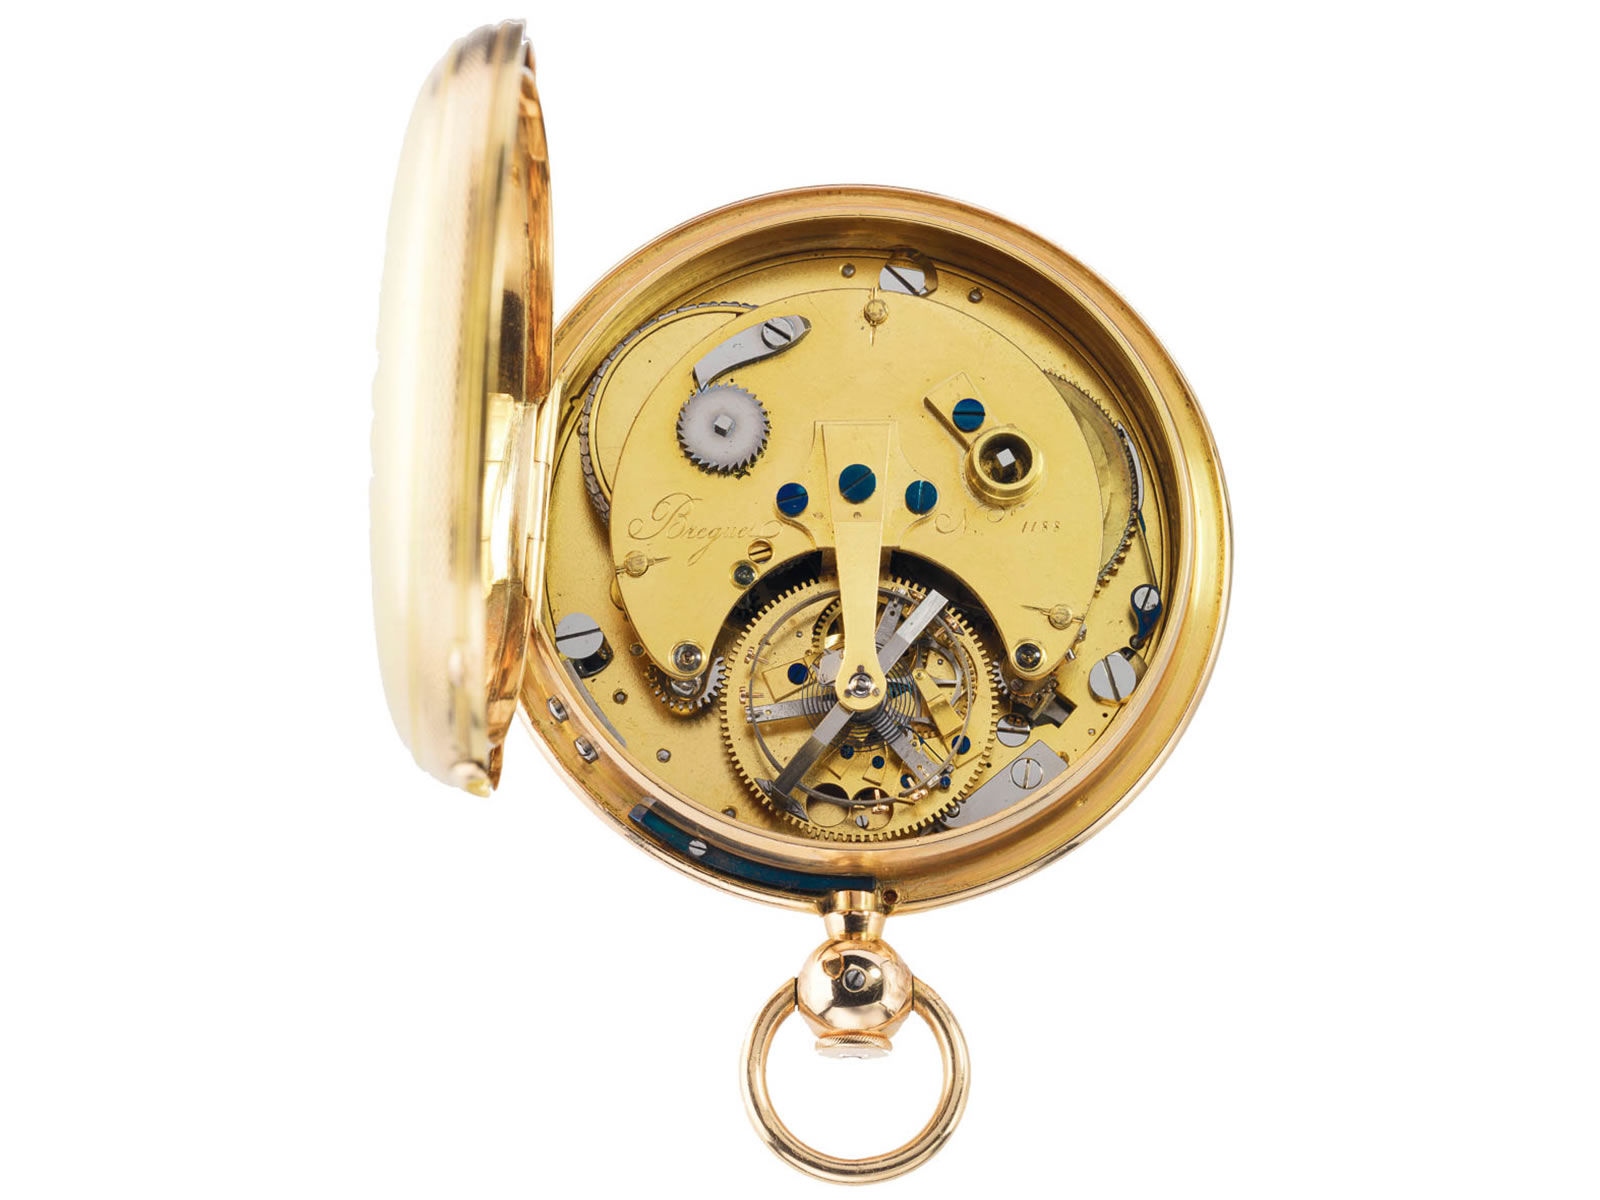 tourbillon-precision-pocket-watch-no-1188-.jpg